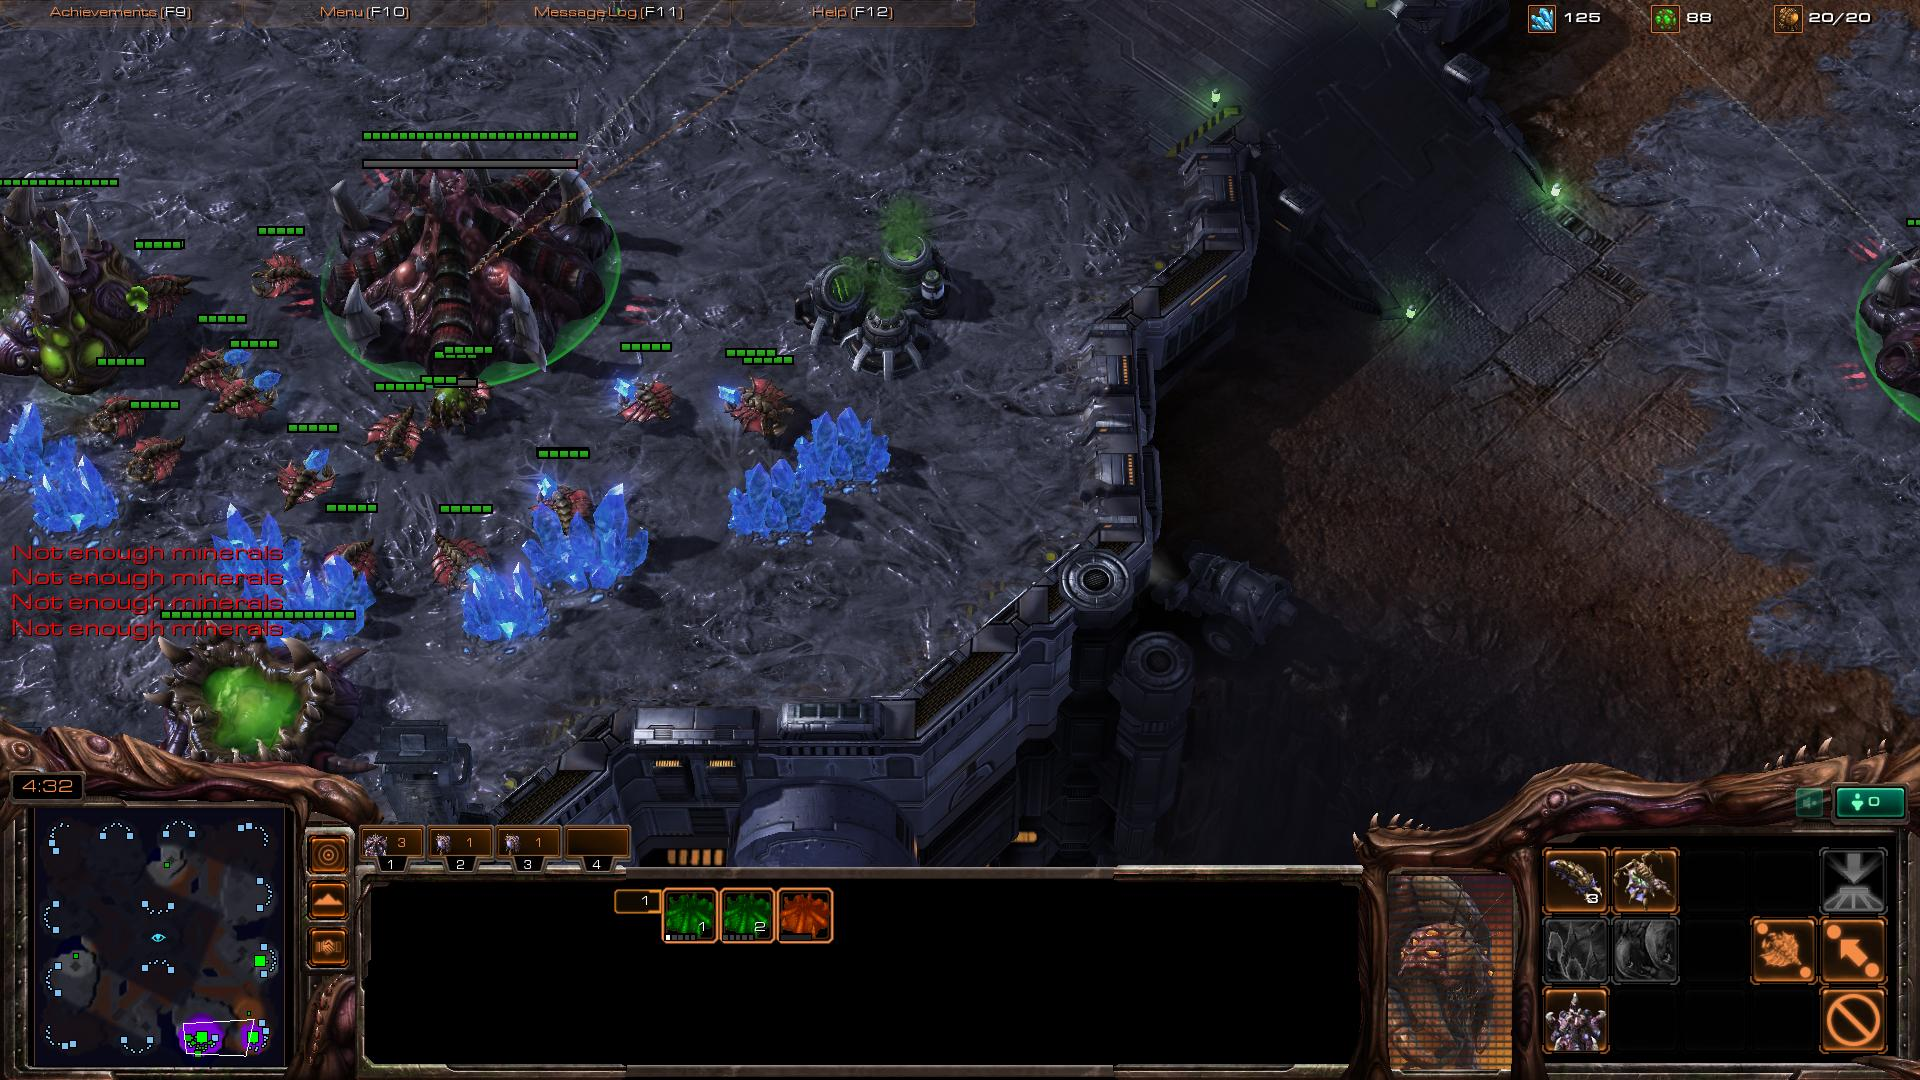 starcraft 2 zerg sc2 screenshot